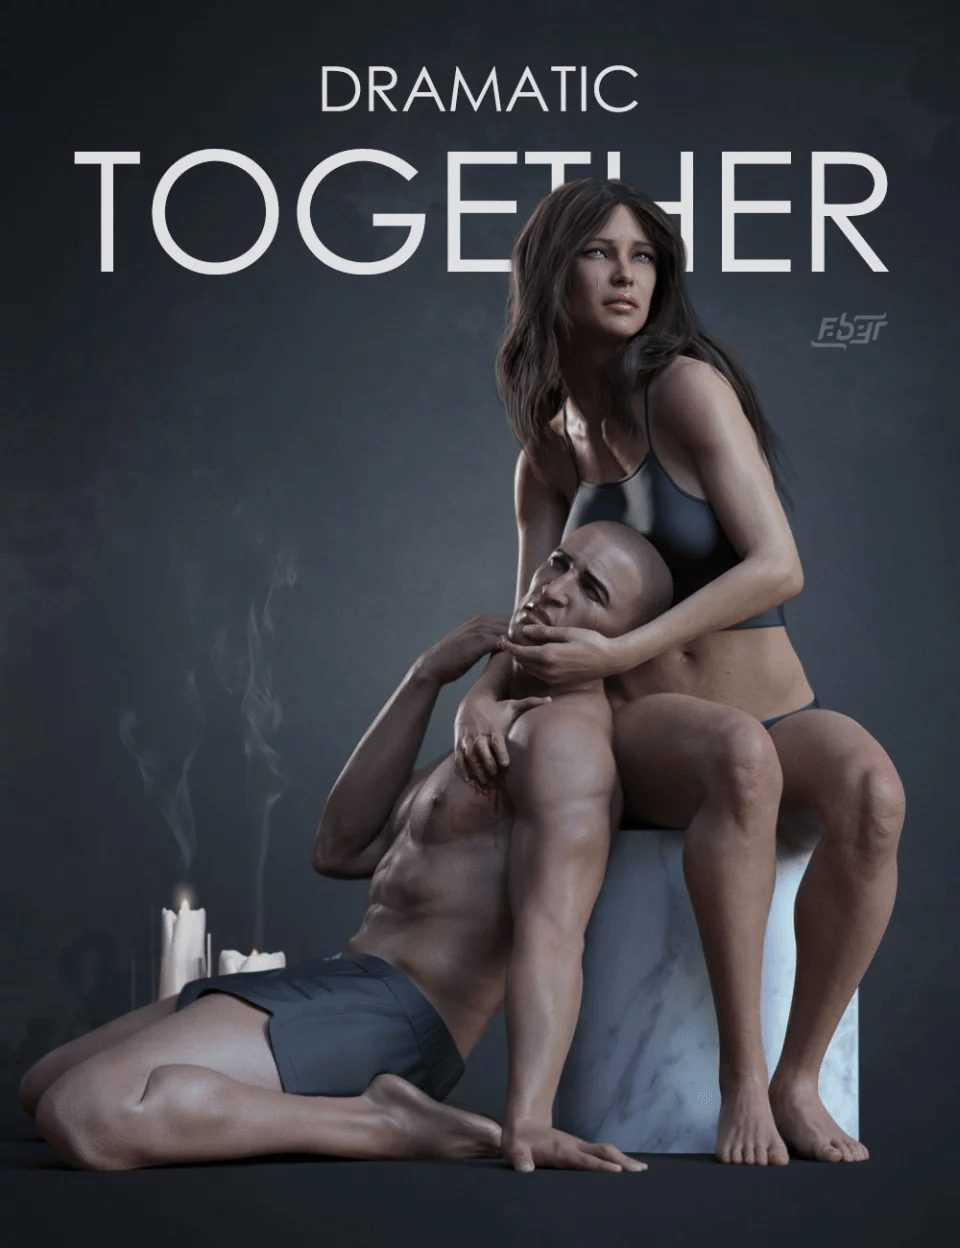 Dramatic Together Poses for Genesis 8